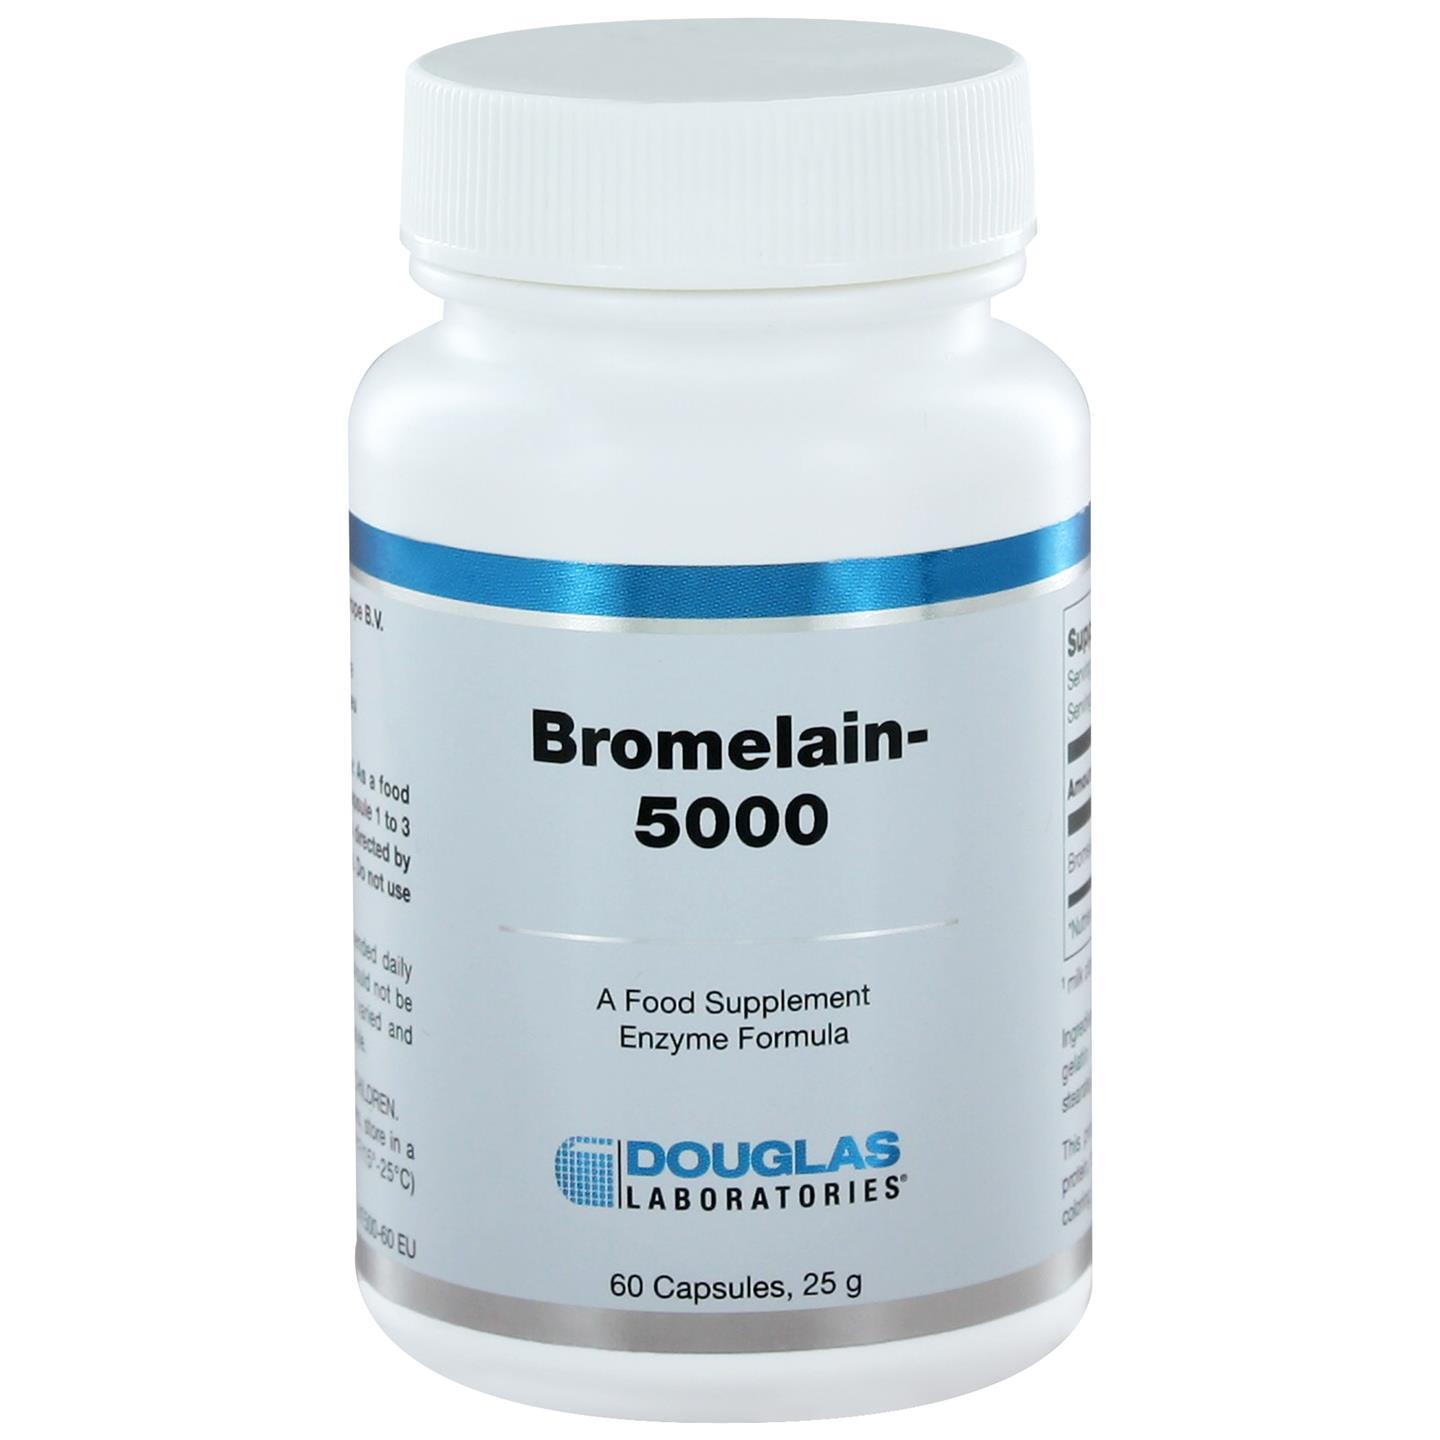 Douglas laboratories bromelain 5000(60 caps)